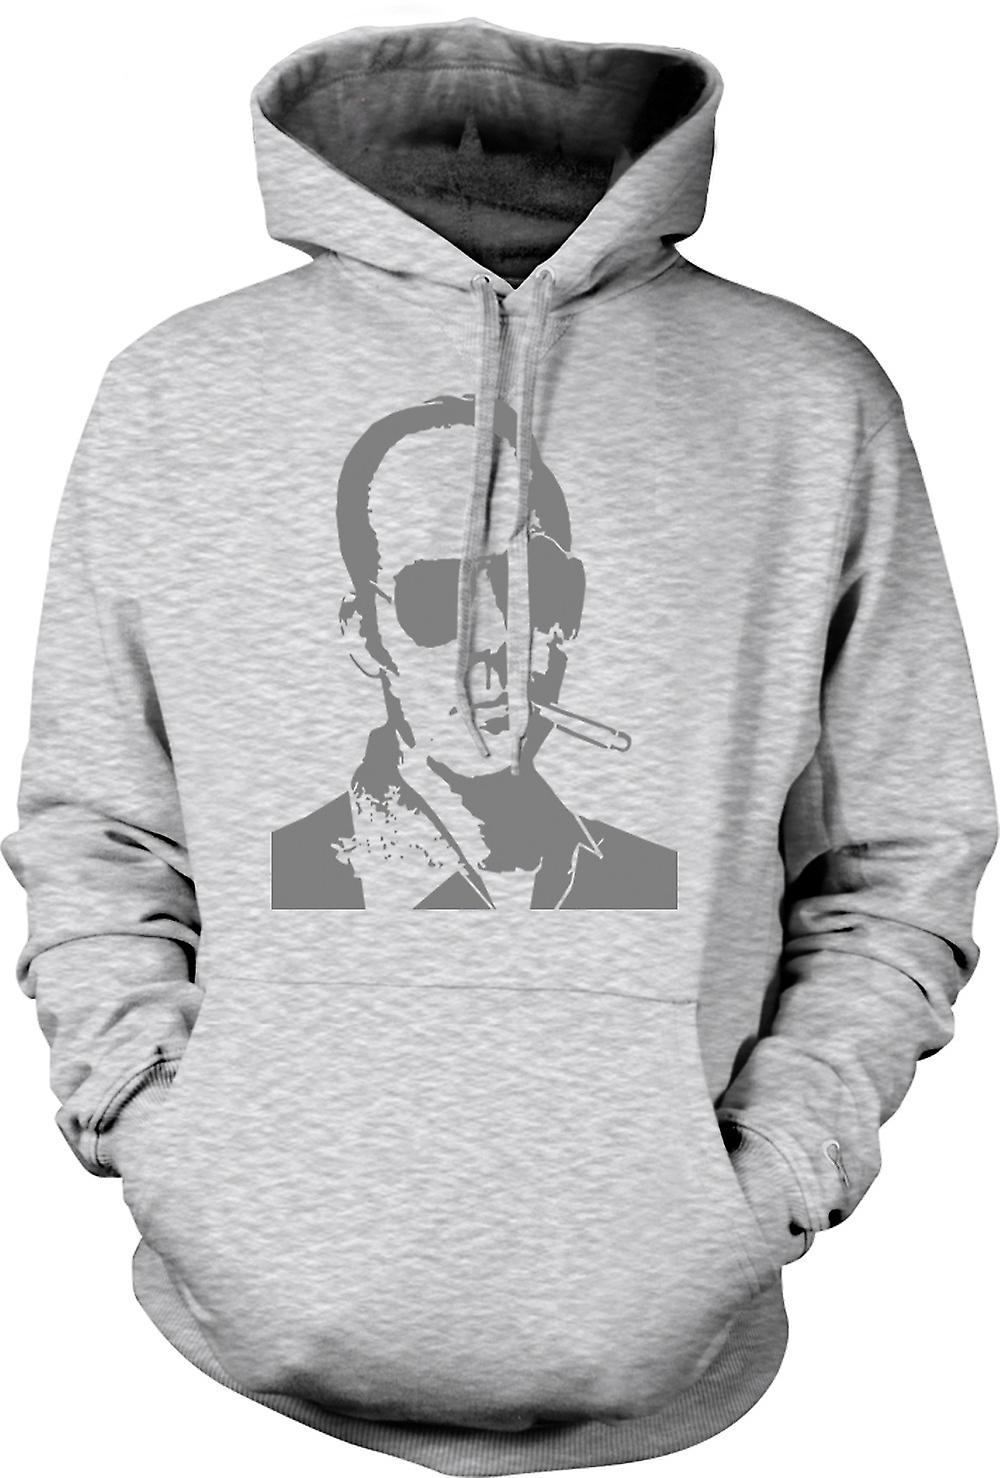 Mens Hoodie - Hunter S Thompson Fear And Loathing